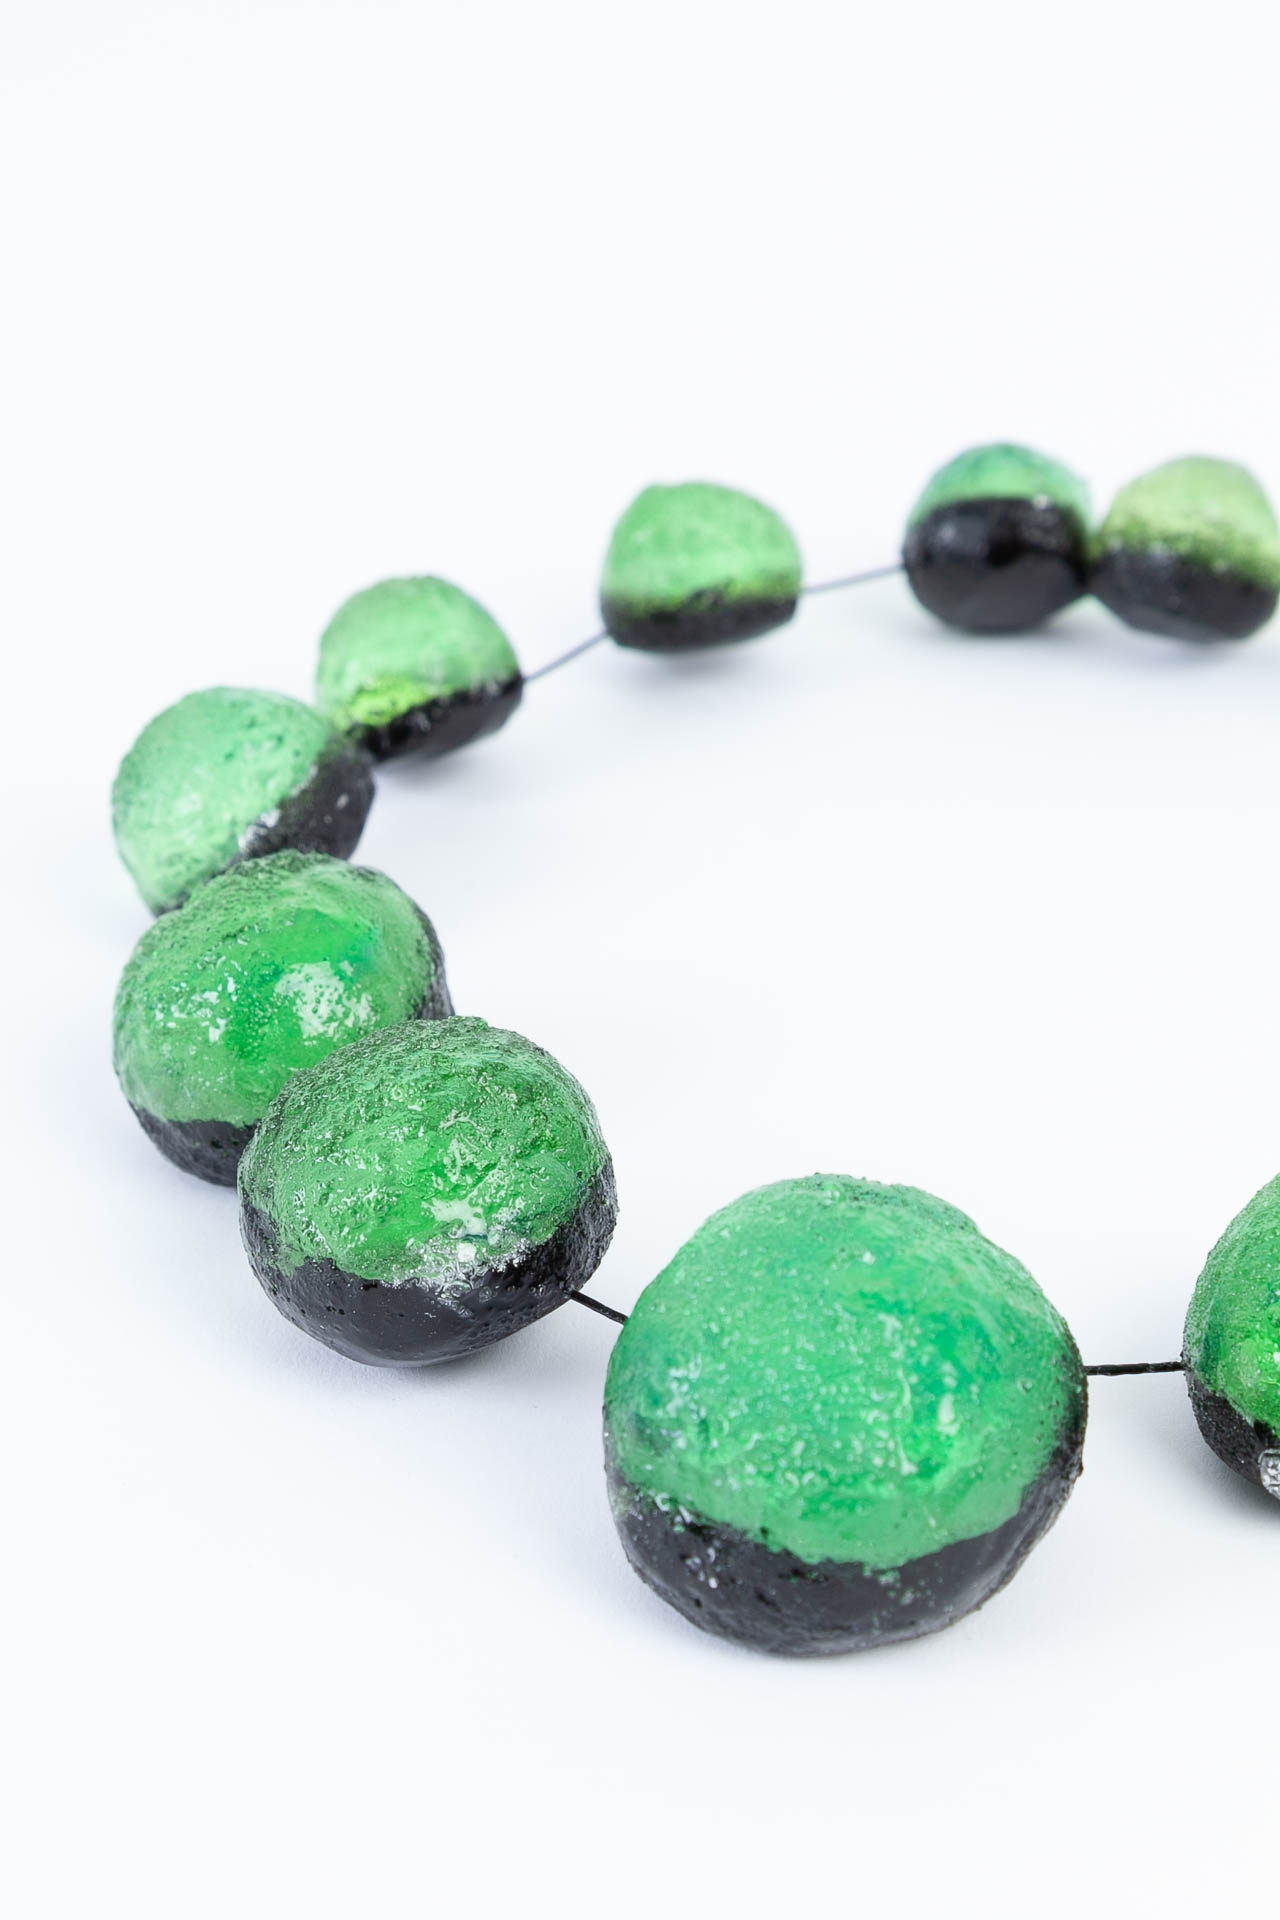 Collier 13 boules Vertes - Marianne Olry